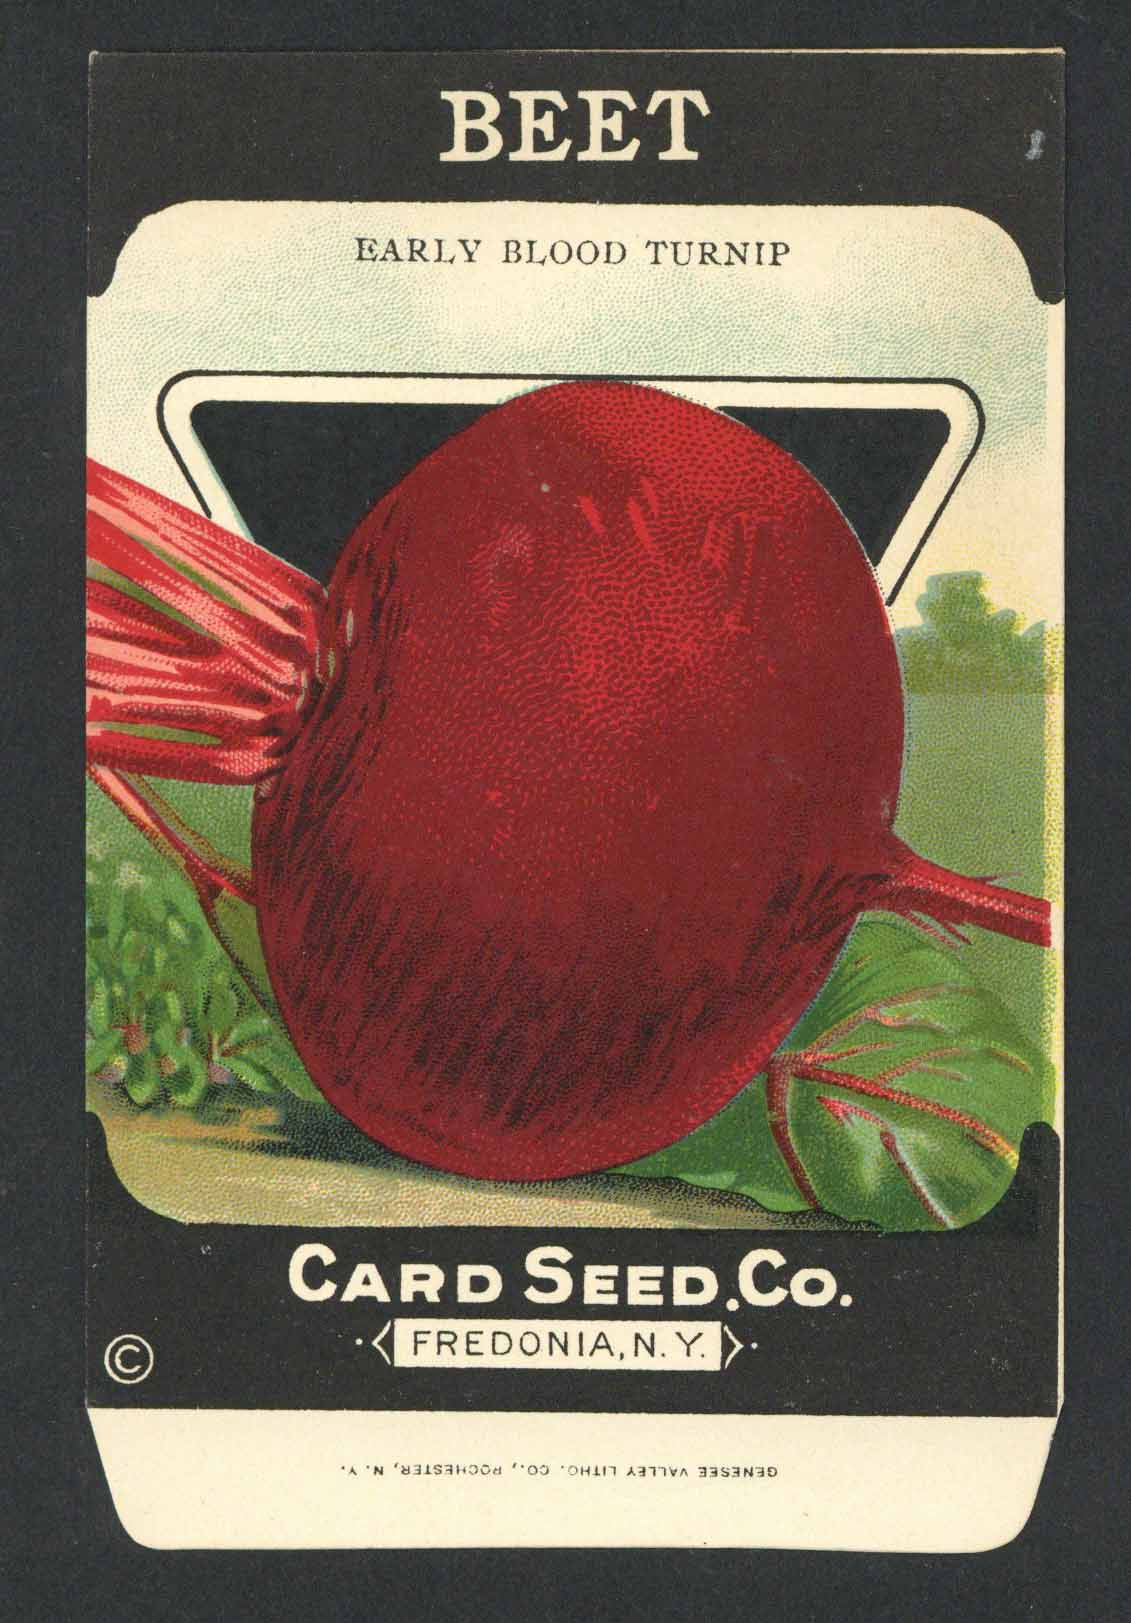 Beet Antique Card Seed Co. Seed Packet, Early Blood Turnip